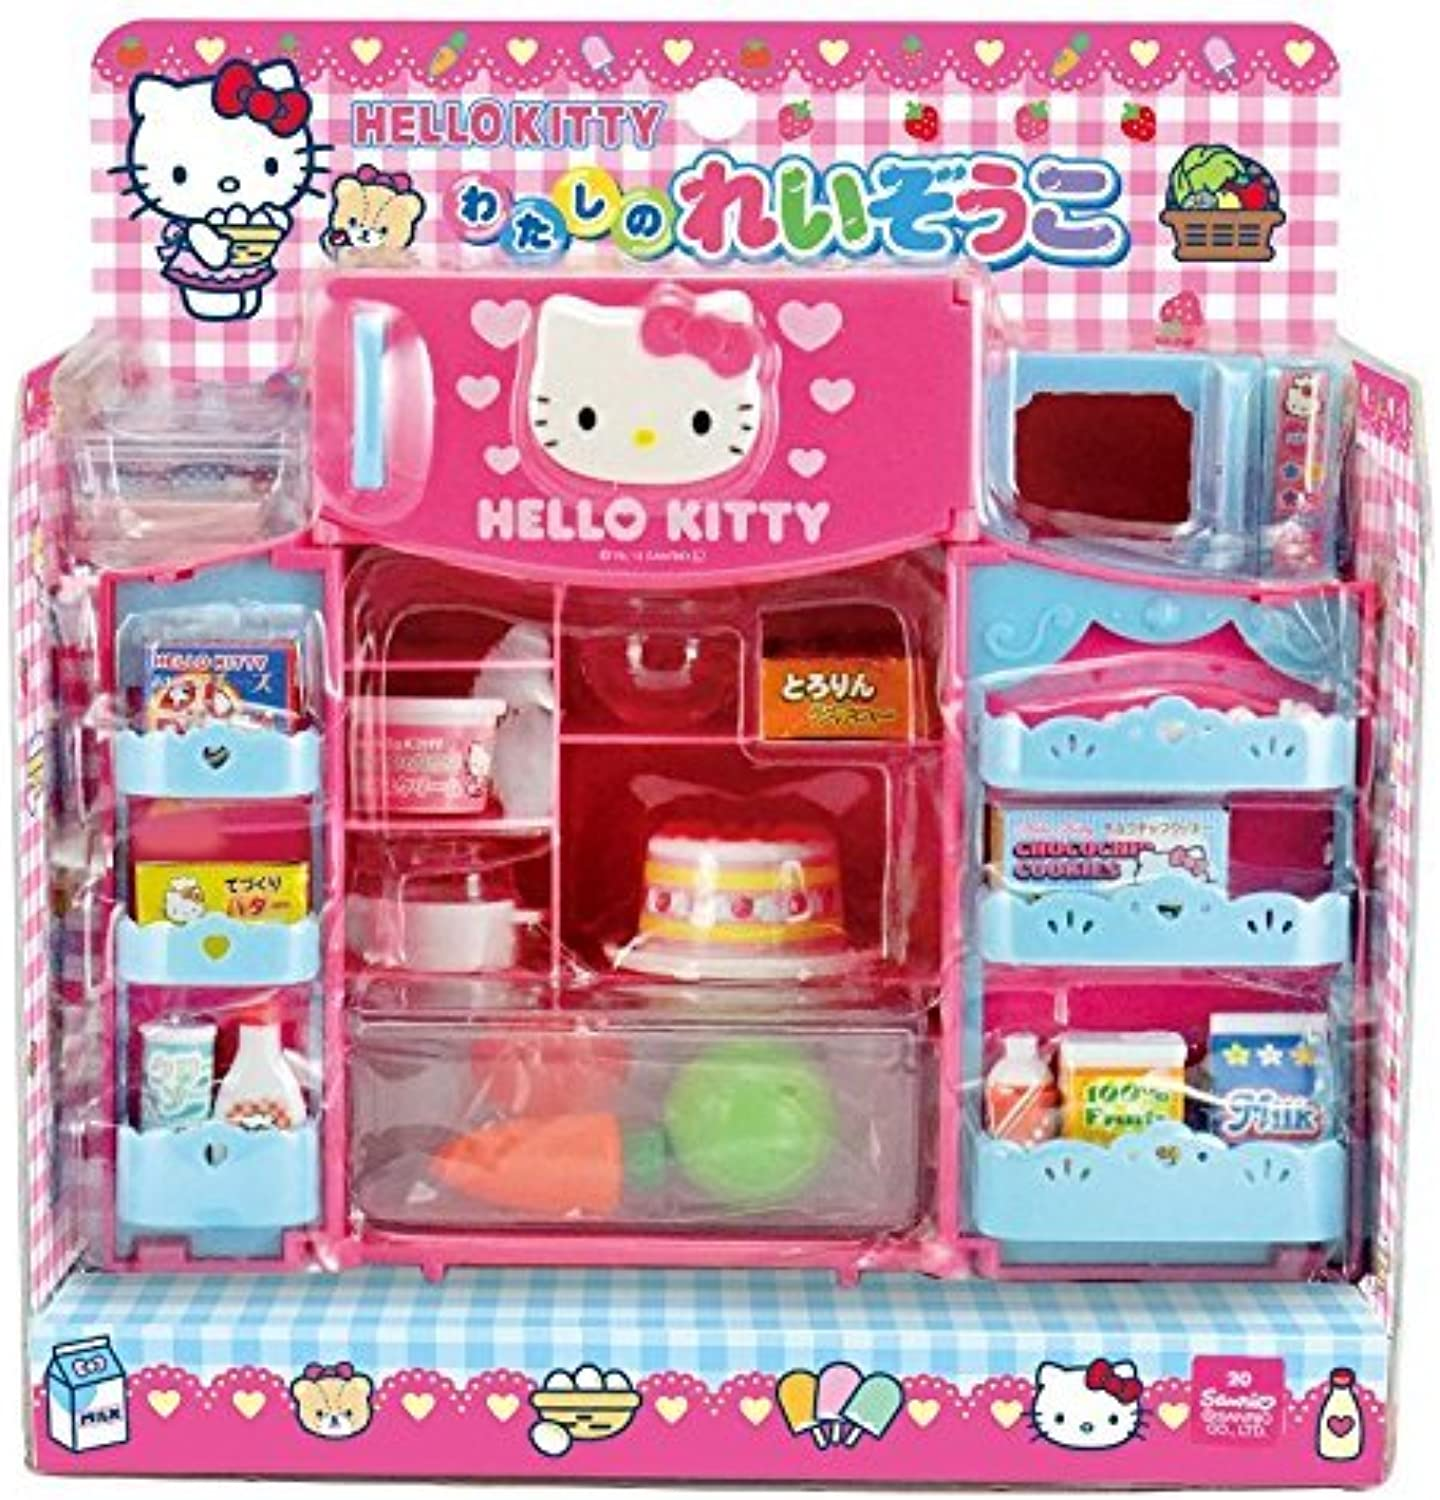 Con 100% de calidad y servicio de% 100. Cute Hello Kitty Refrigerator & Microwave with Various Foods Foods Foods & Other Products by Hello Kitty  salida